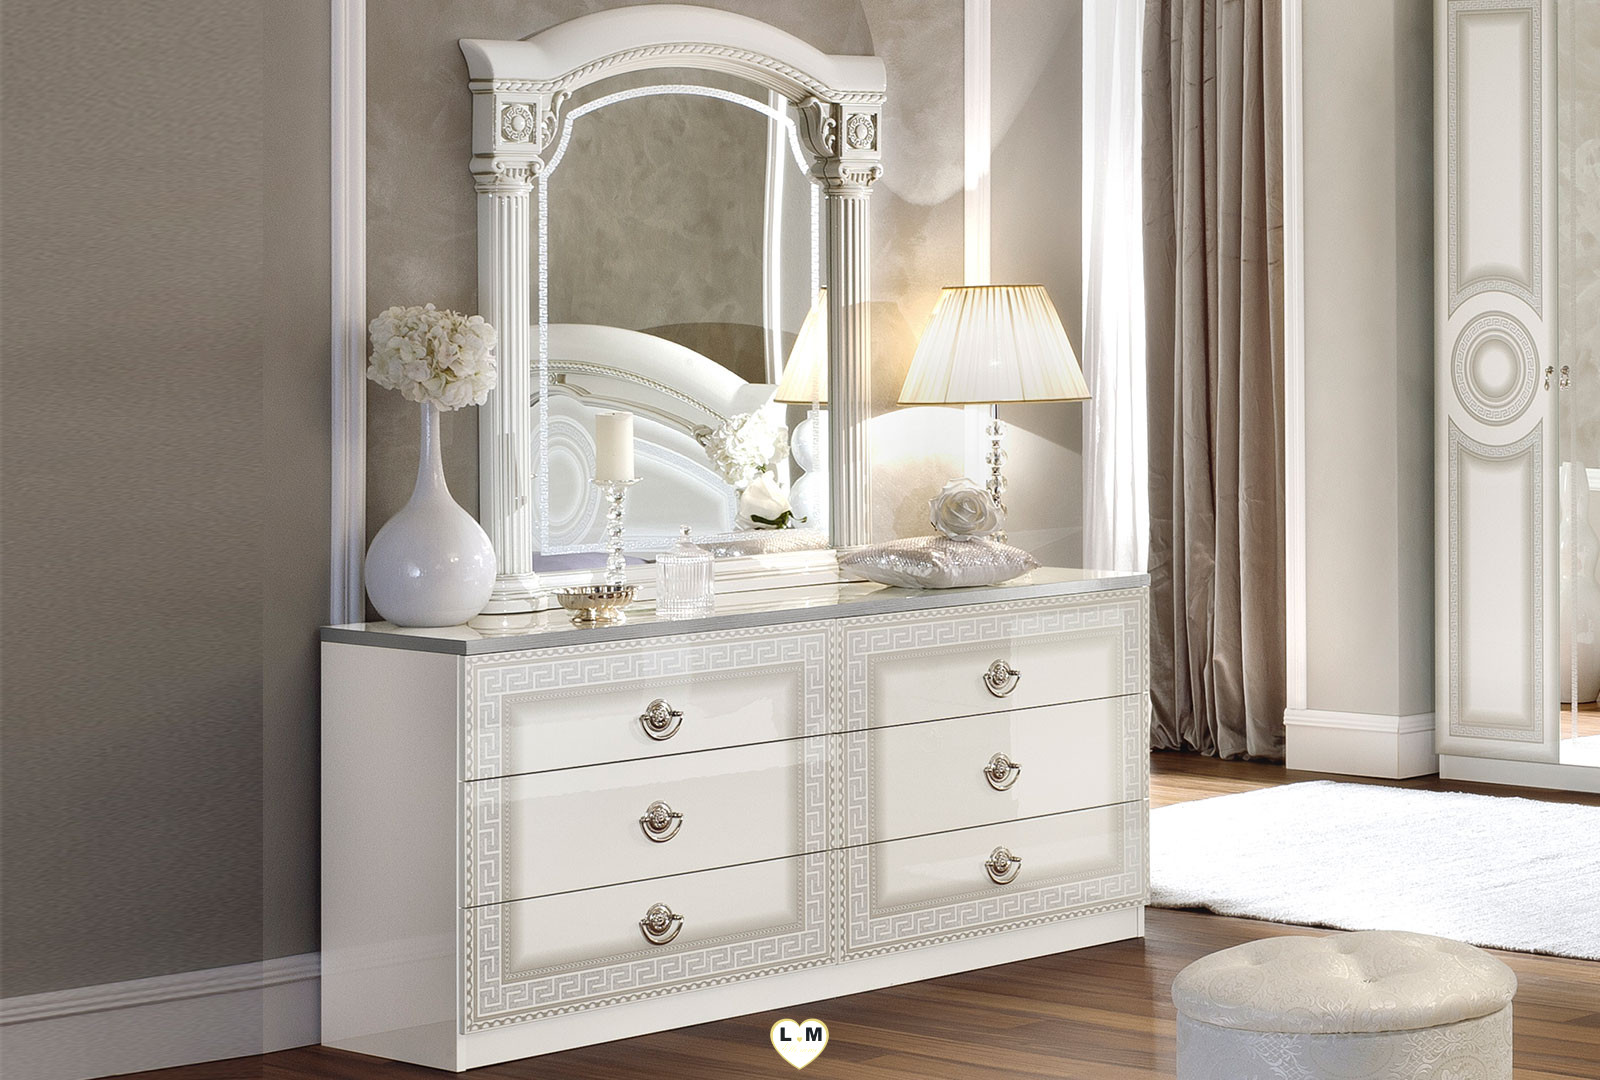 caesar laque blanc et argent chambre a coucher le miroir. Black Bedroom Furniture Sets. Home Design Ideas